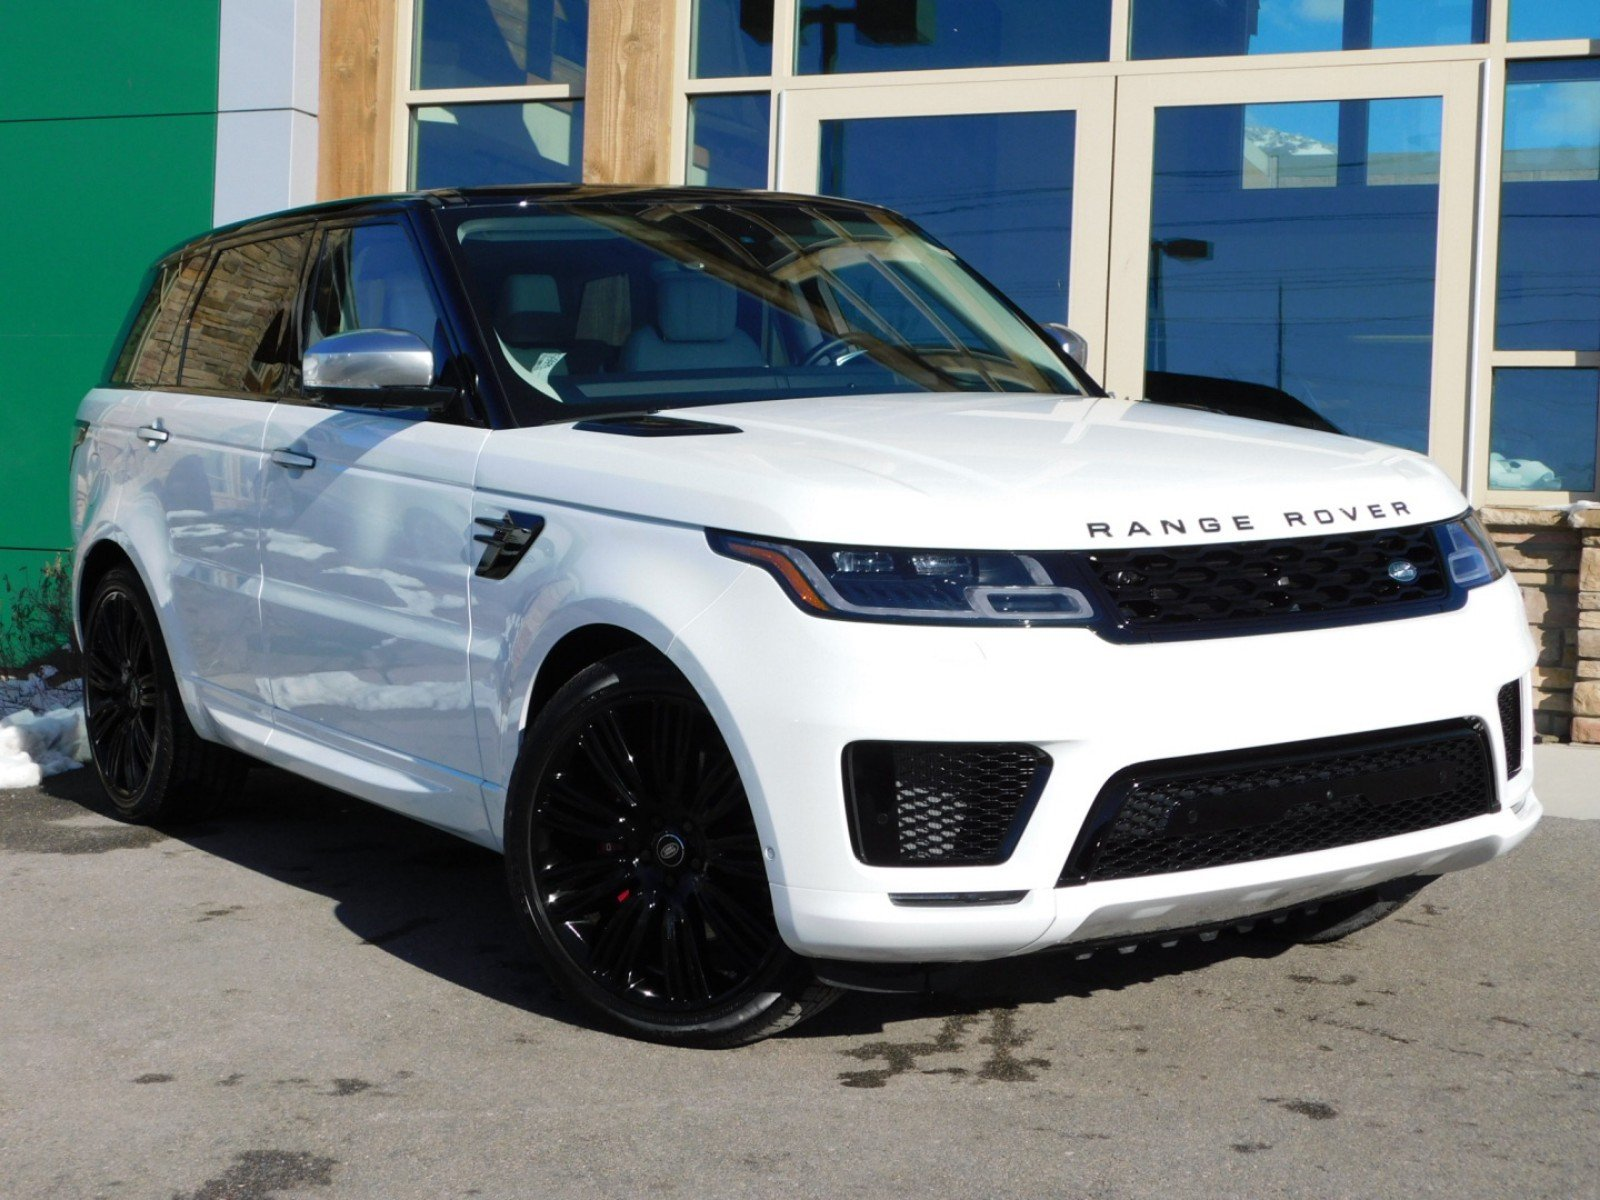 New 2019 Land Rover Range Rover Sport Autobiography 4 Door in ... 884b840ead0c